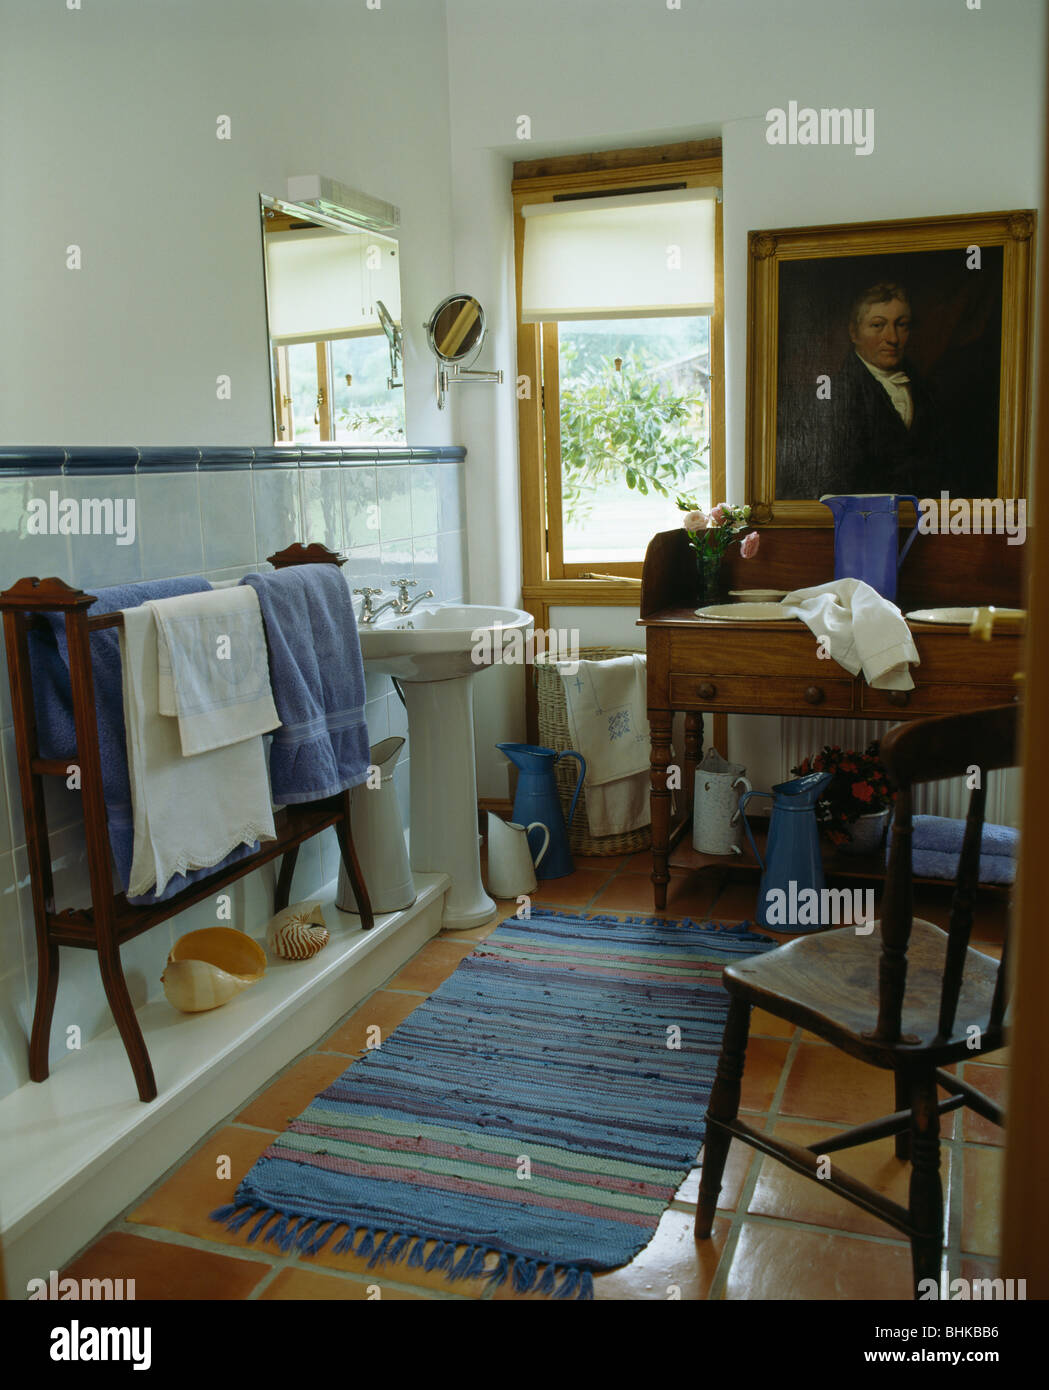 Large oil painting above basins in antique vanity unit in country bathroom  with blue striped cotton rug - Large Oil Painting Above Basins In Antique Vanity Unit In Country